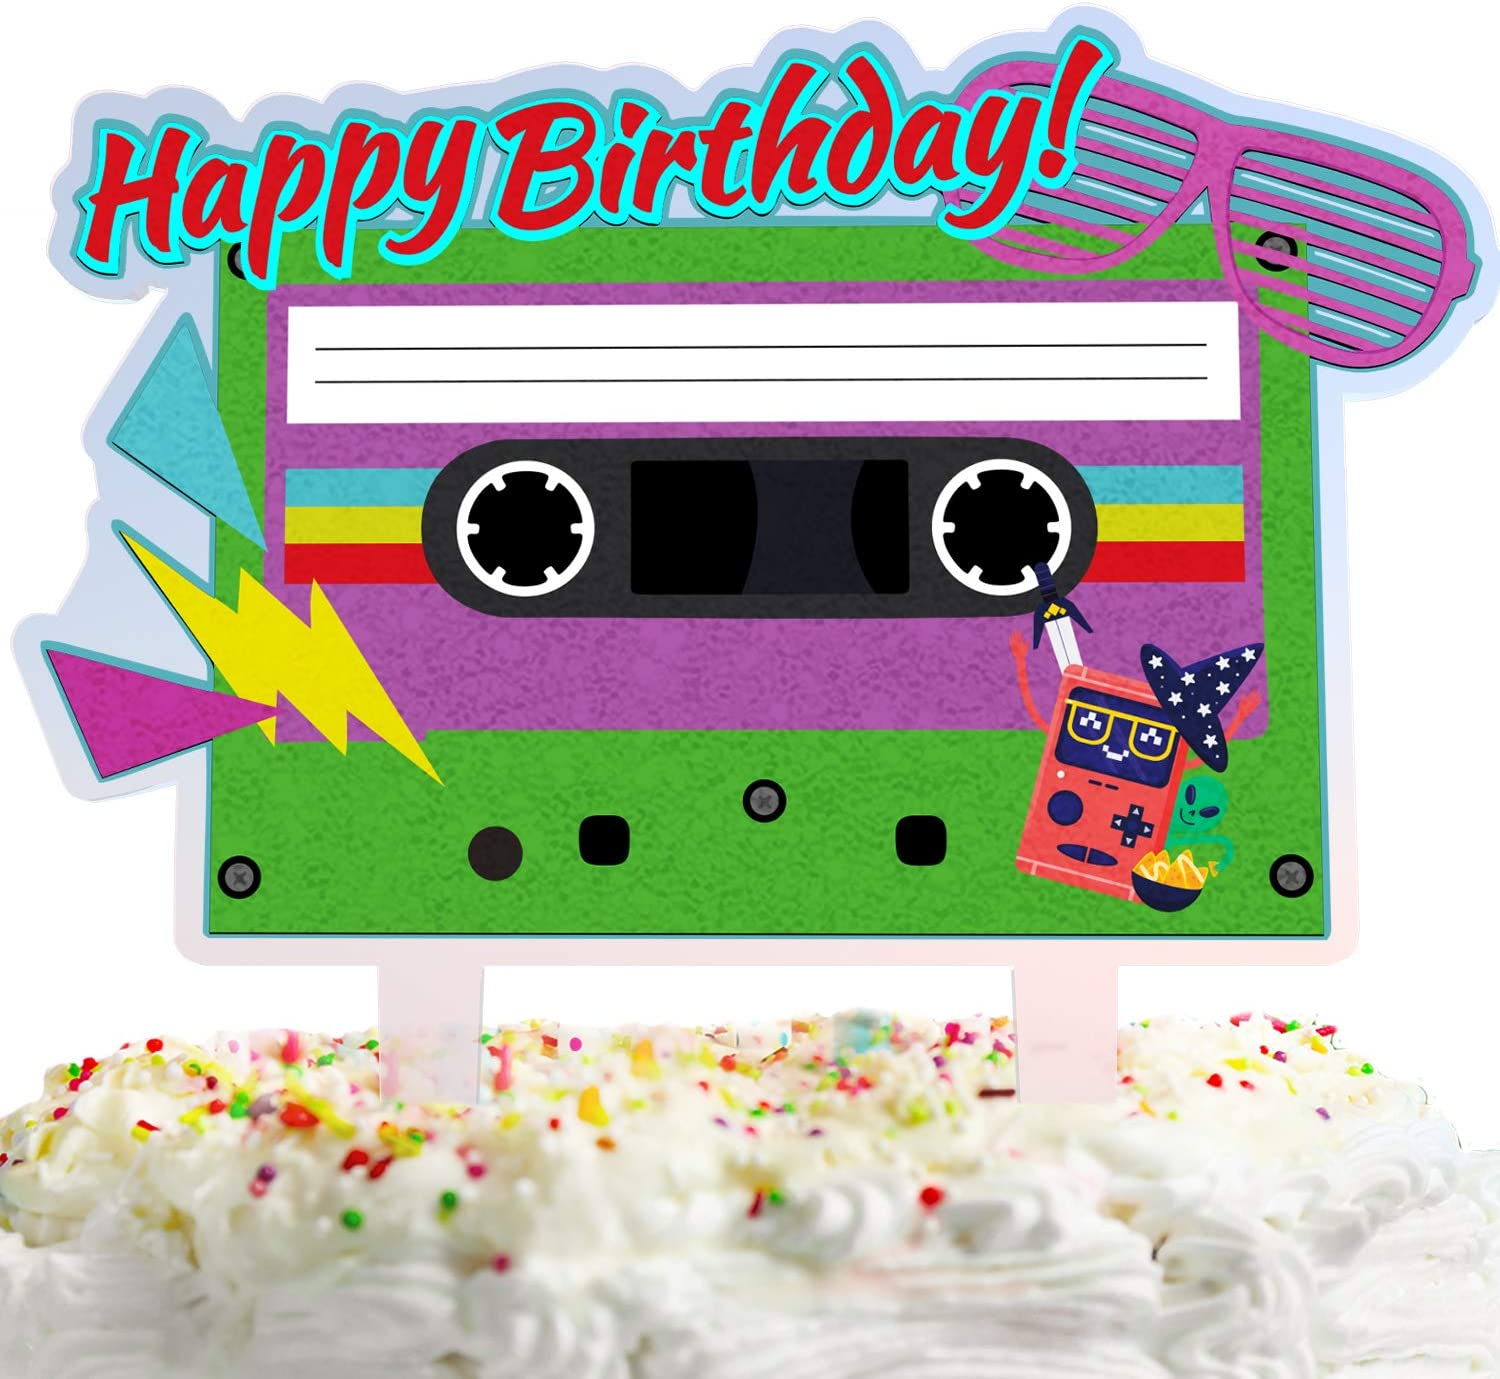 80's Retro Happy Max 69% OFF Birthday Cake with Max 90% OFF Decorations Magn Topper